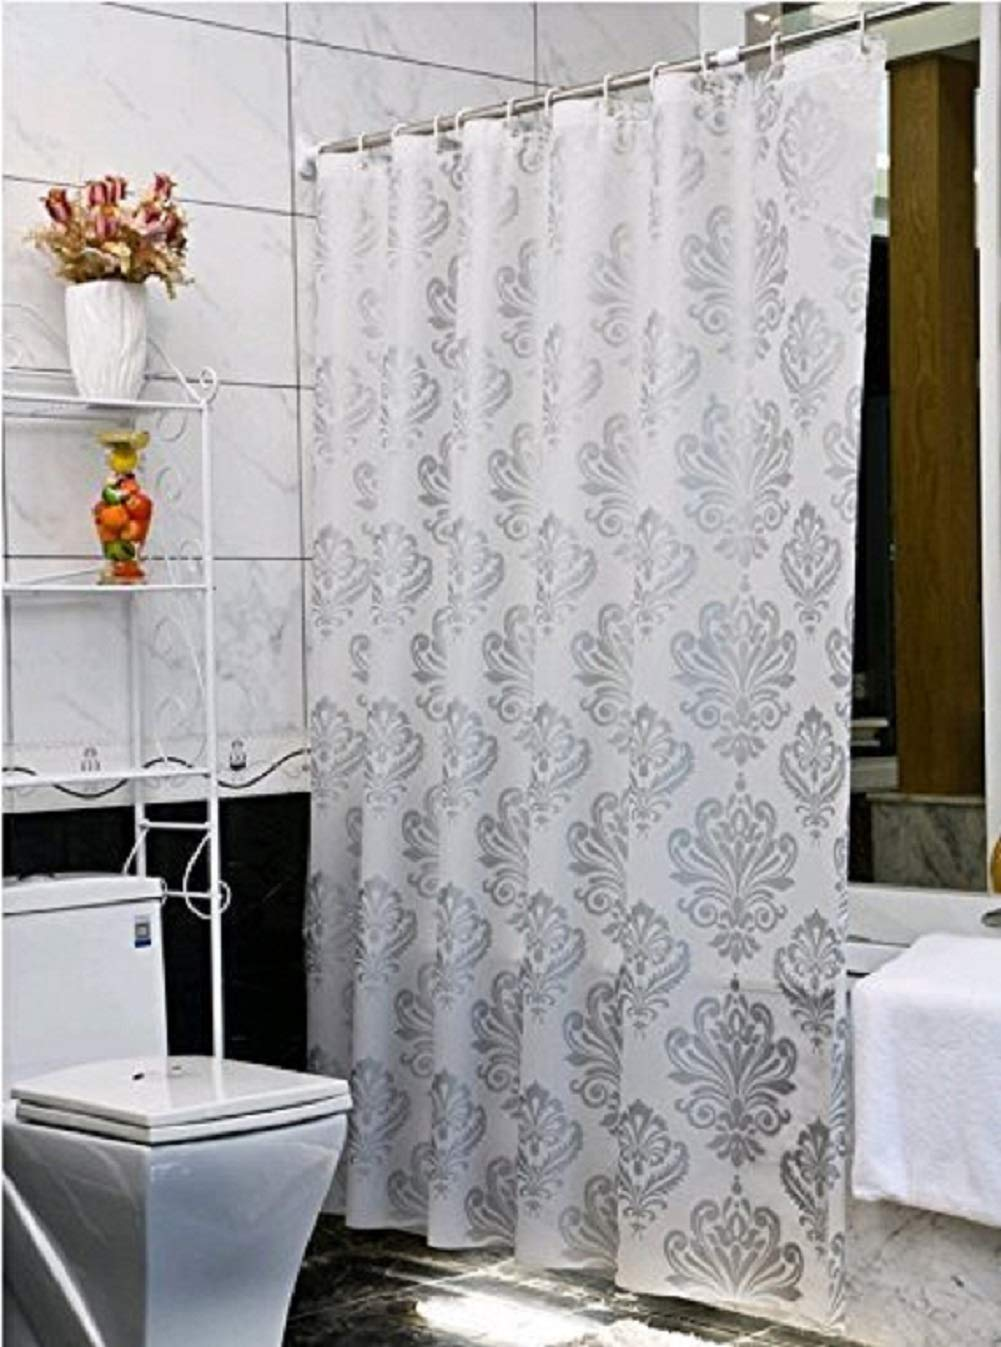 Uforme 36 Inch by 72 Inch Environmentally PEVA Shower Curtain Mildew Resistant and Waterproof PVC-free Bath Liner with Curtain Rings for Bath, Washable, Silver Grey Ufatansy European/Sliver Grey3672